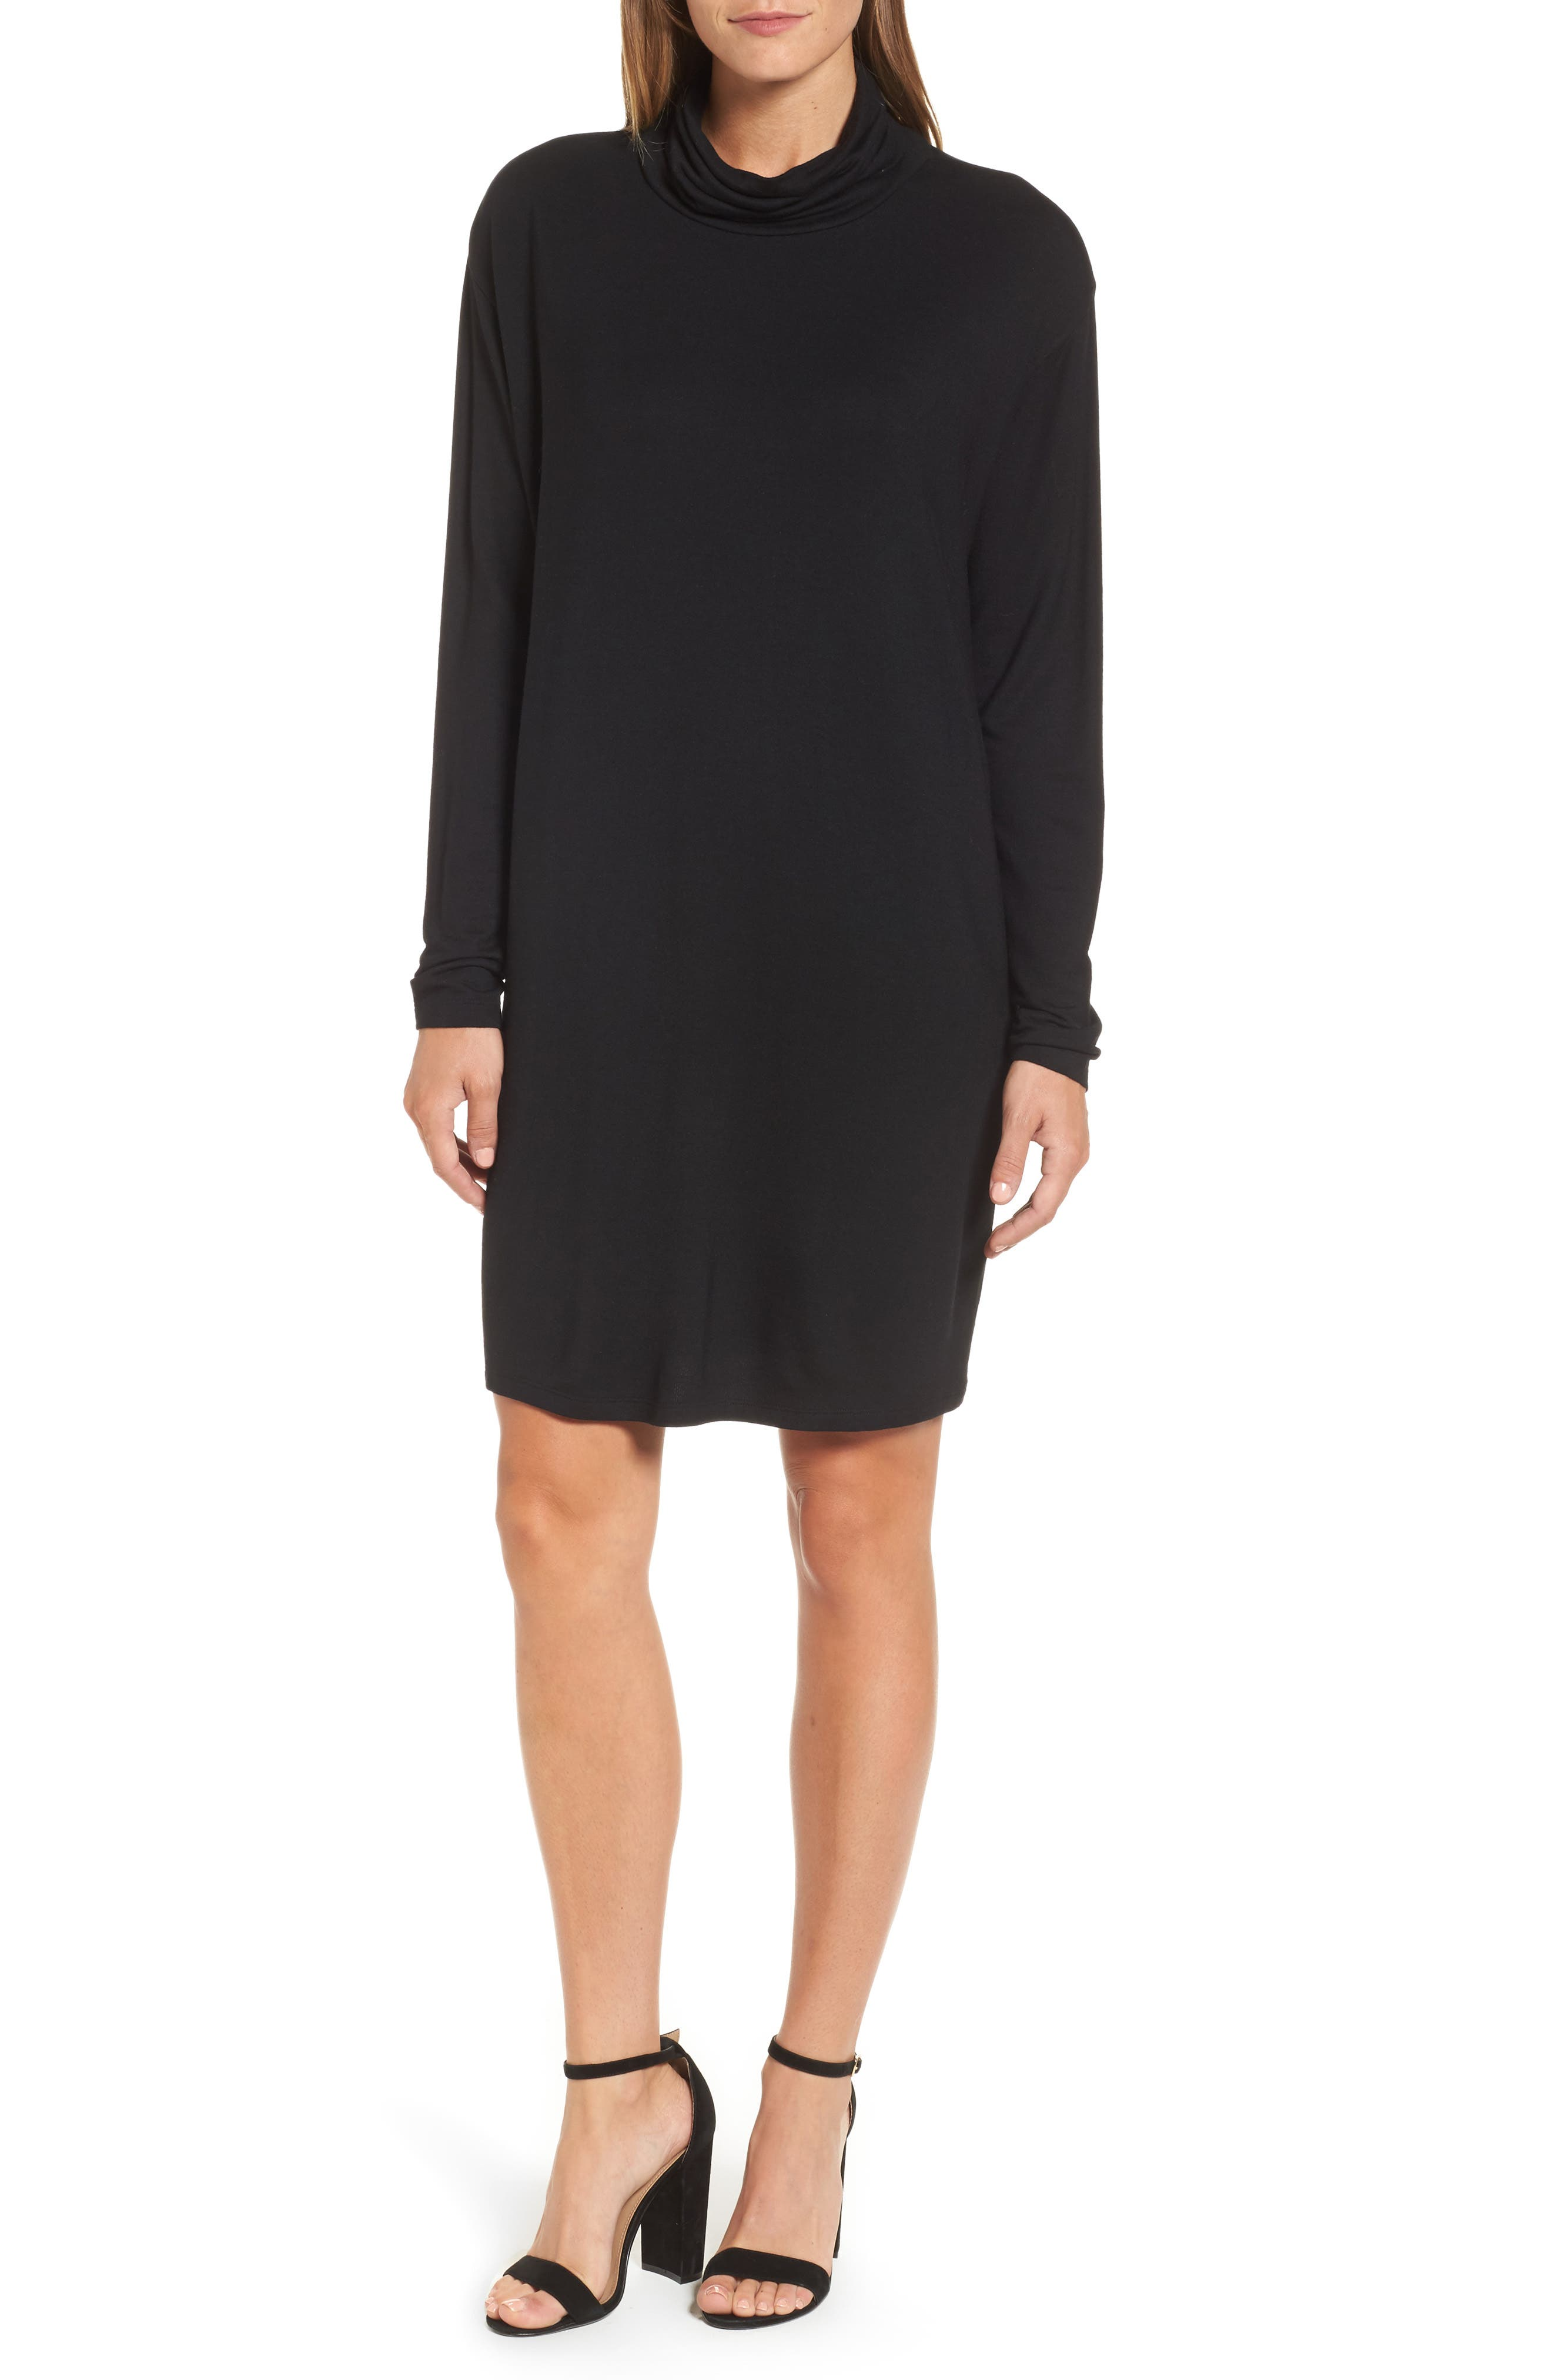 PRESS Slouchy Turtleneck Dress